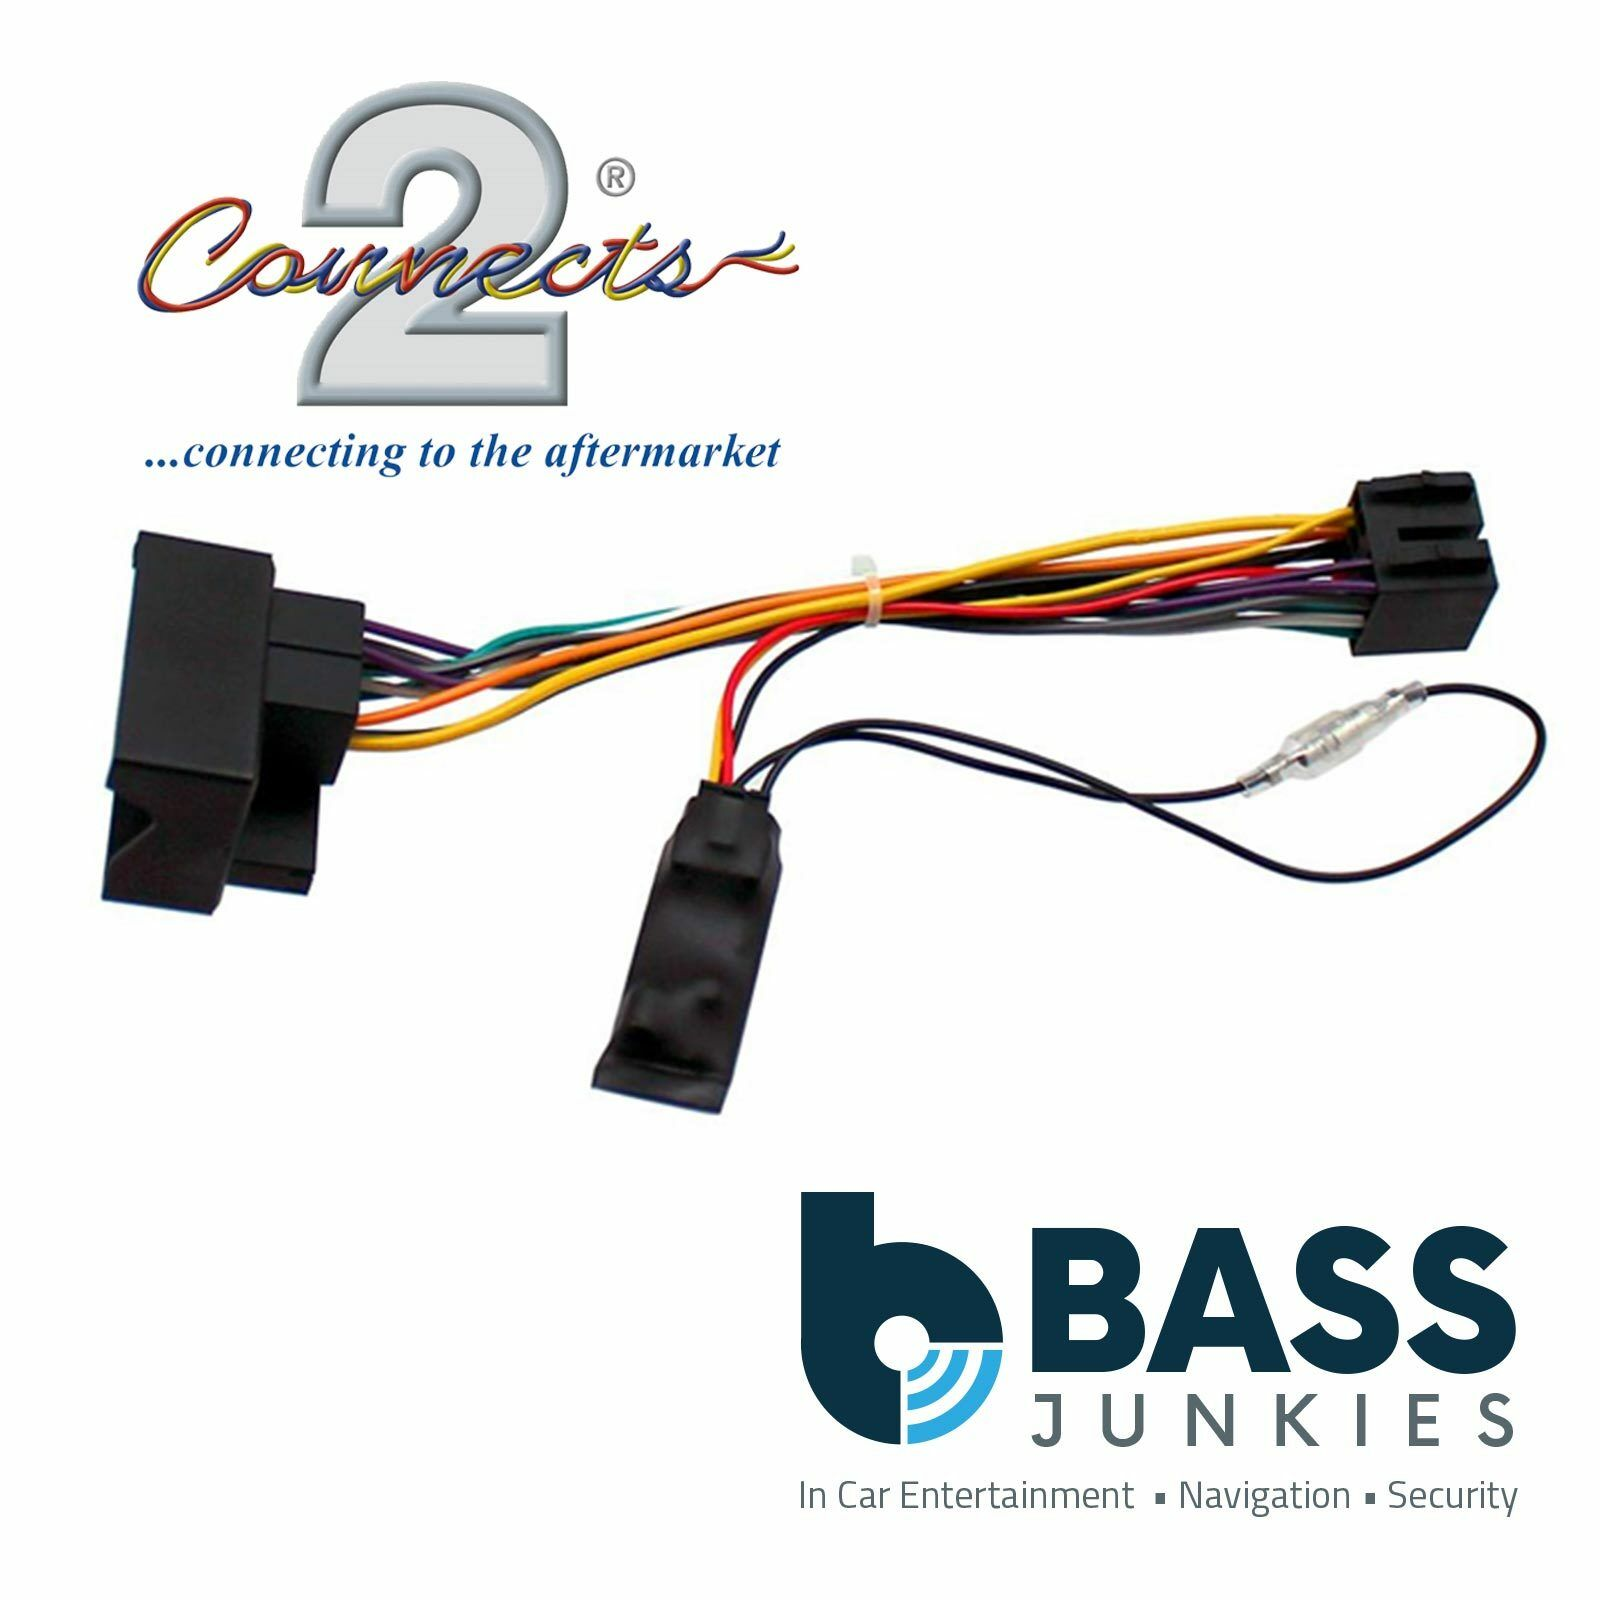 Ford Kuga 2008 2012 Car Stereo Quadlock Wiring Harness Ignition How To Connect A Wire For Adapter Lead 1 Of 1free Shipping See More